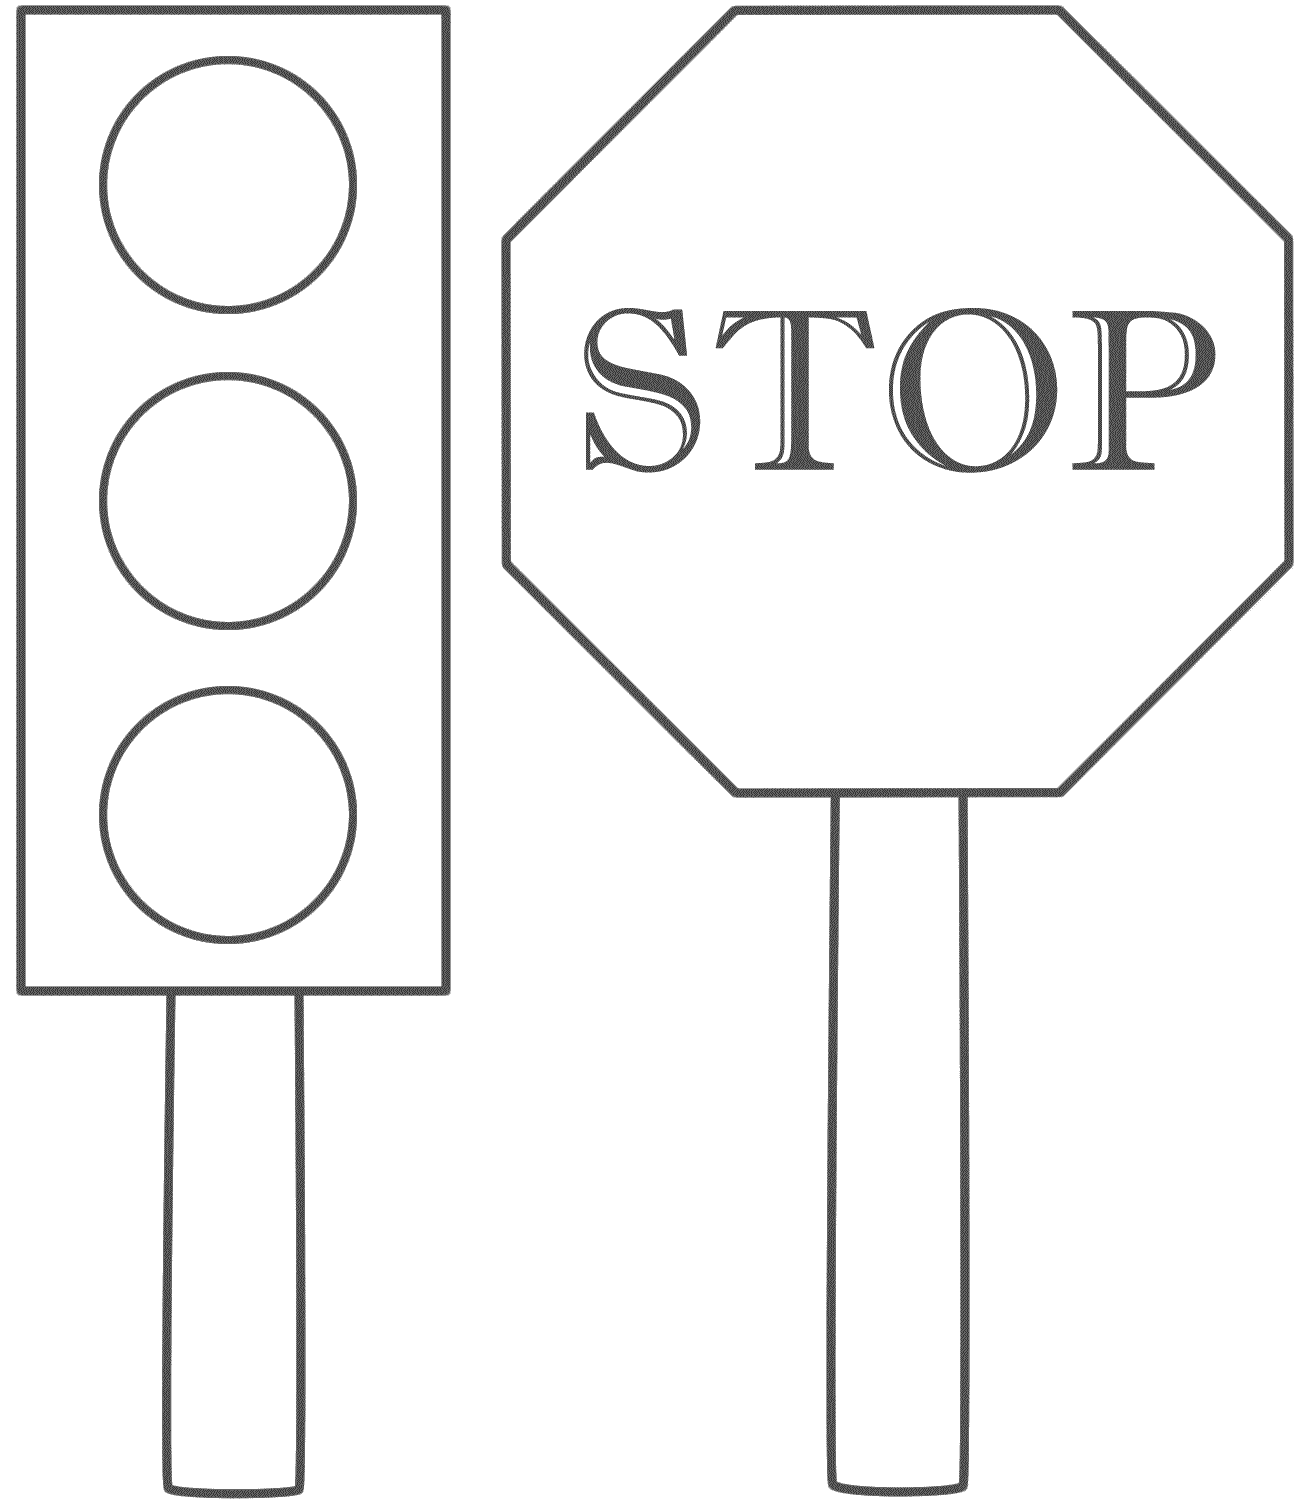 stop signs coloring pages stoplightcoloringpage | Traffic Light and Stop Sign   Coloring  stop signs coloring pages